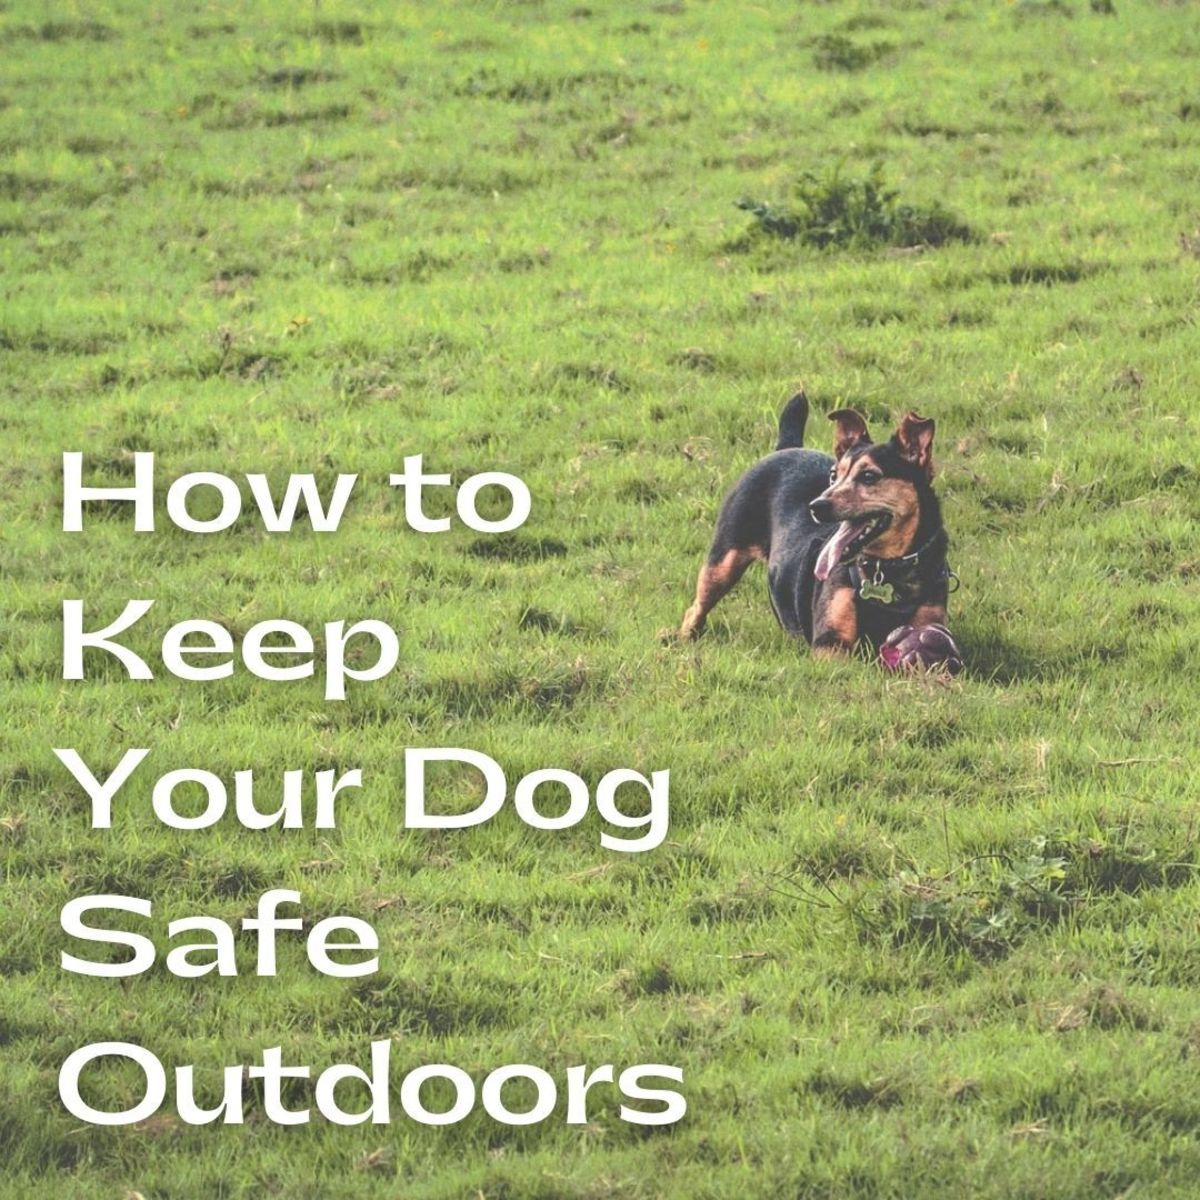 Dogs love to go with us everywhere, especially outside. But how can you keep them safe?